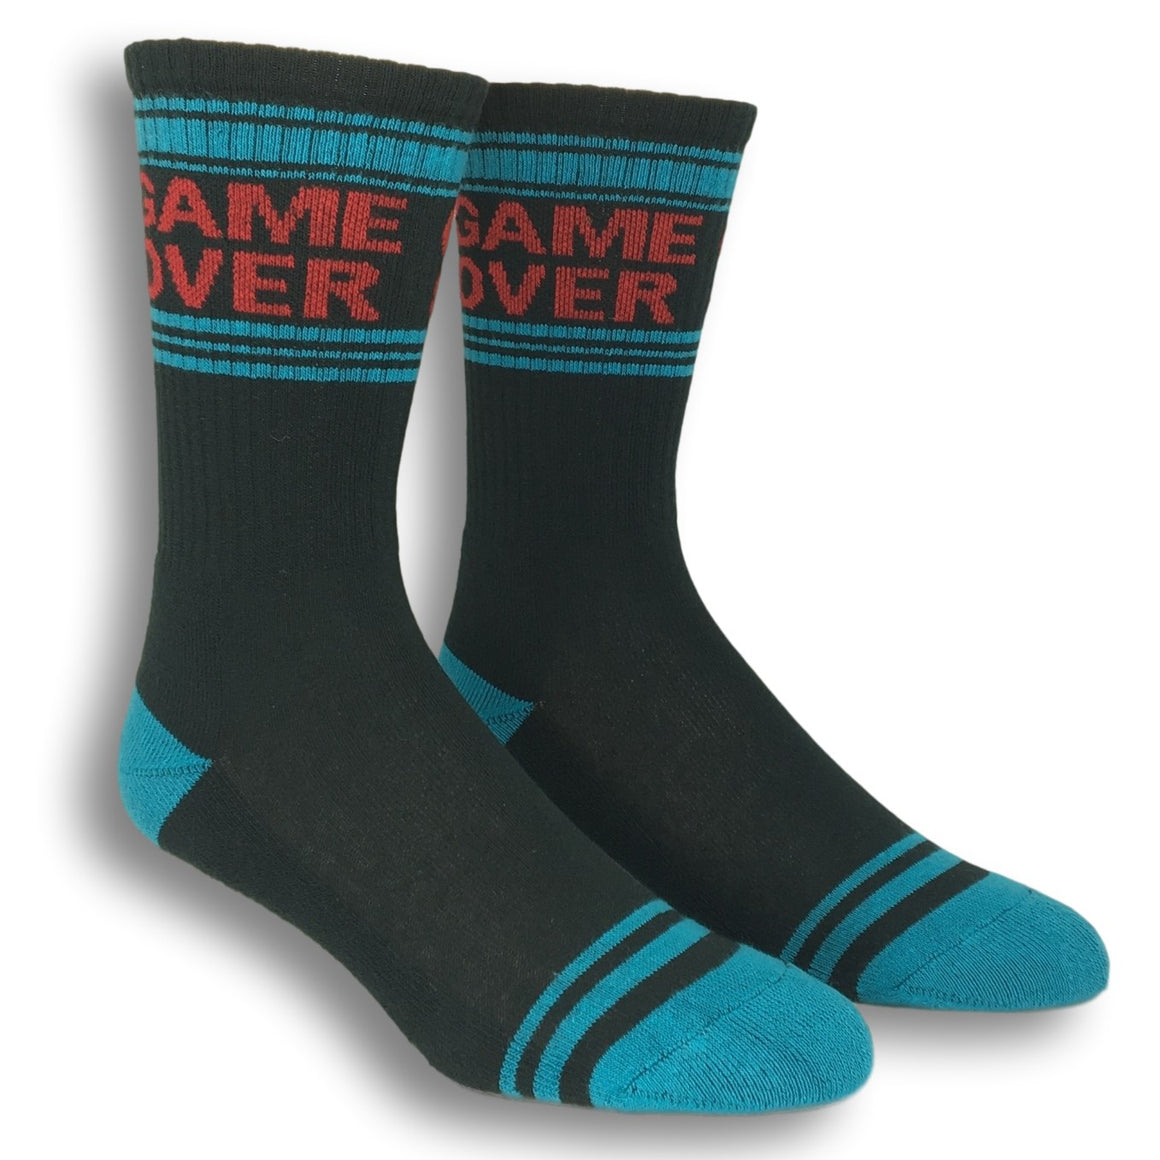 Game Over Athletic Socks by Gumball Poodle - The Sock Spot